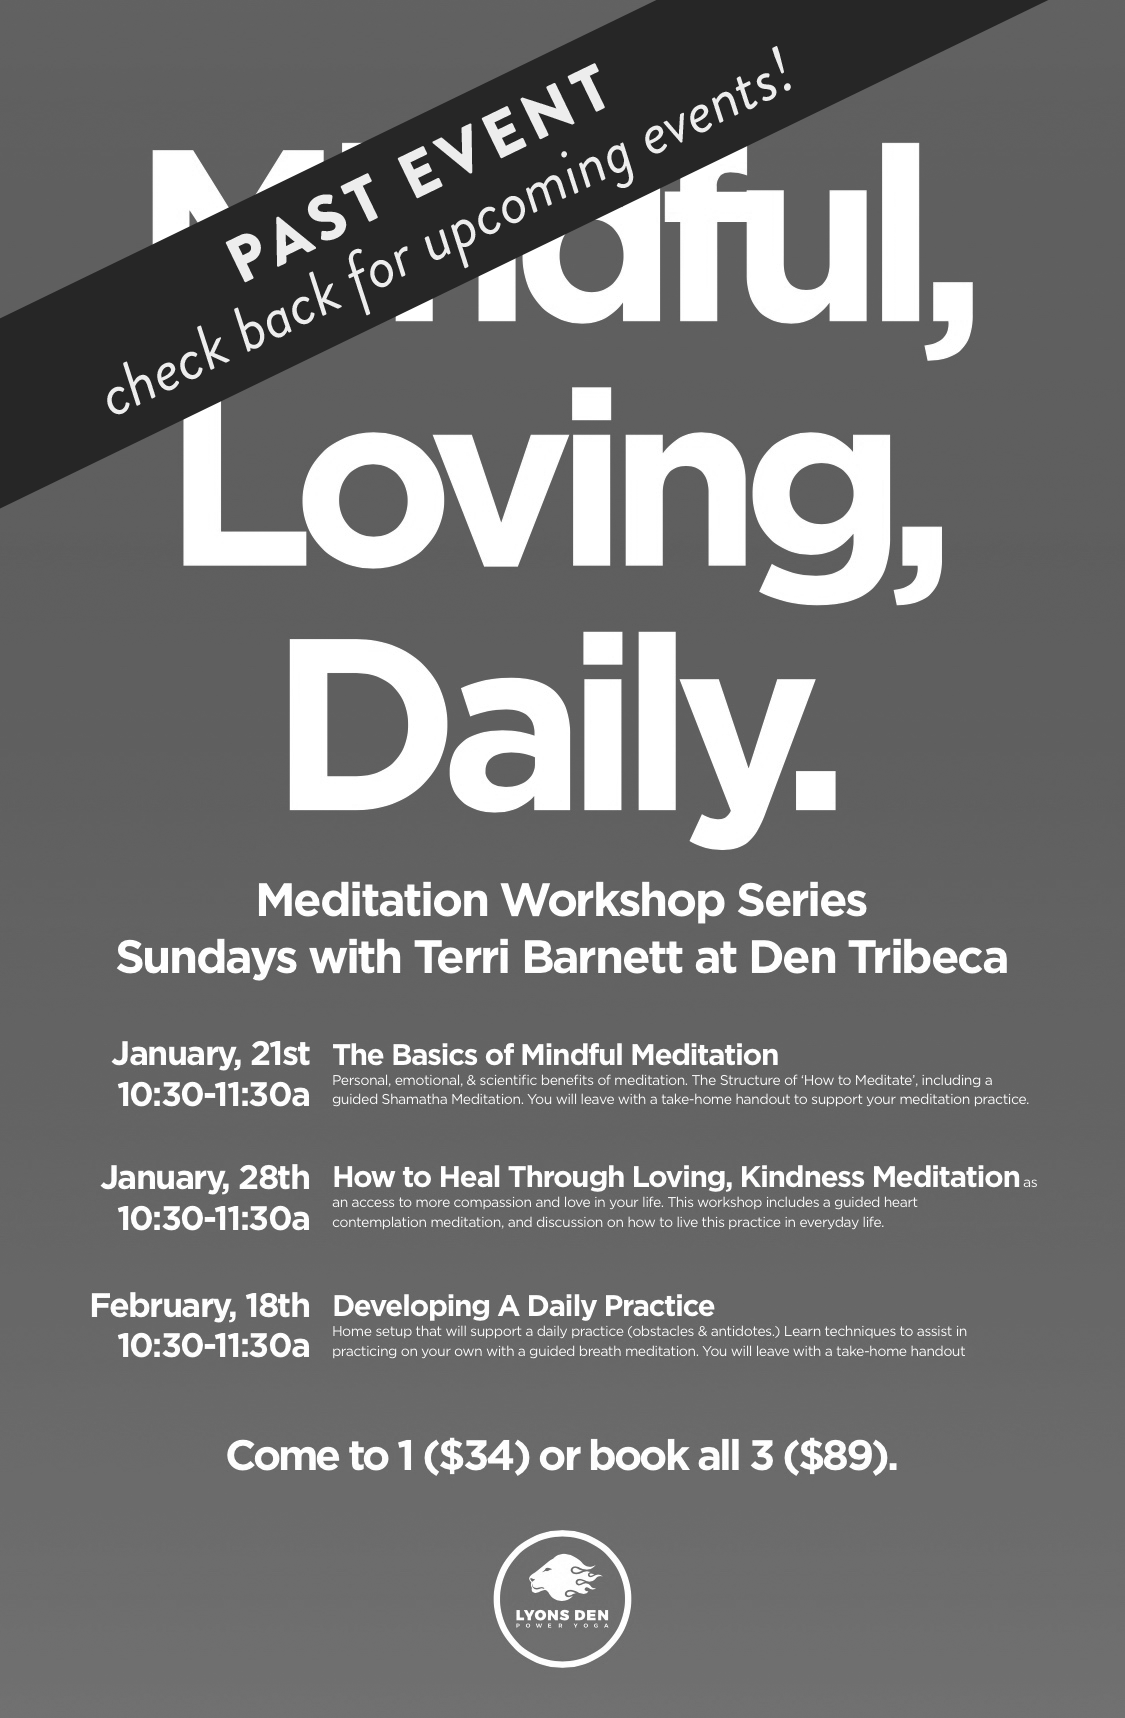 meditation workshop series// Jan 28 & feb 18 - Terri will be leading a 3-part meditation workshop series at Lyons Den Power Yoga in Tribeca. Join us Sunday, January 28th and Sunday, February 18th to go deep with guided meditation practices and learn tools for bringing meditation into your own daily life.